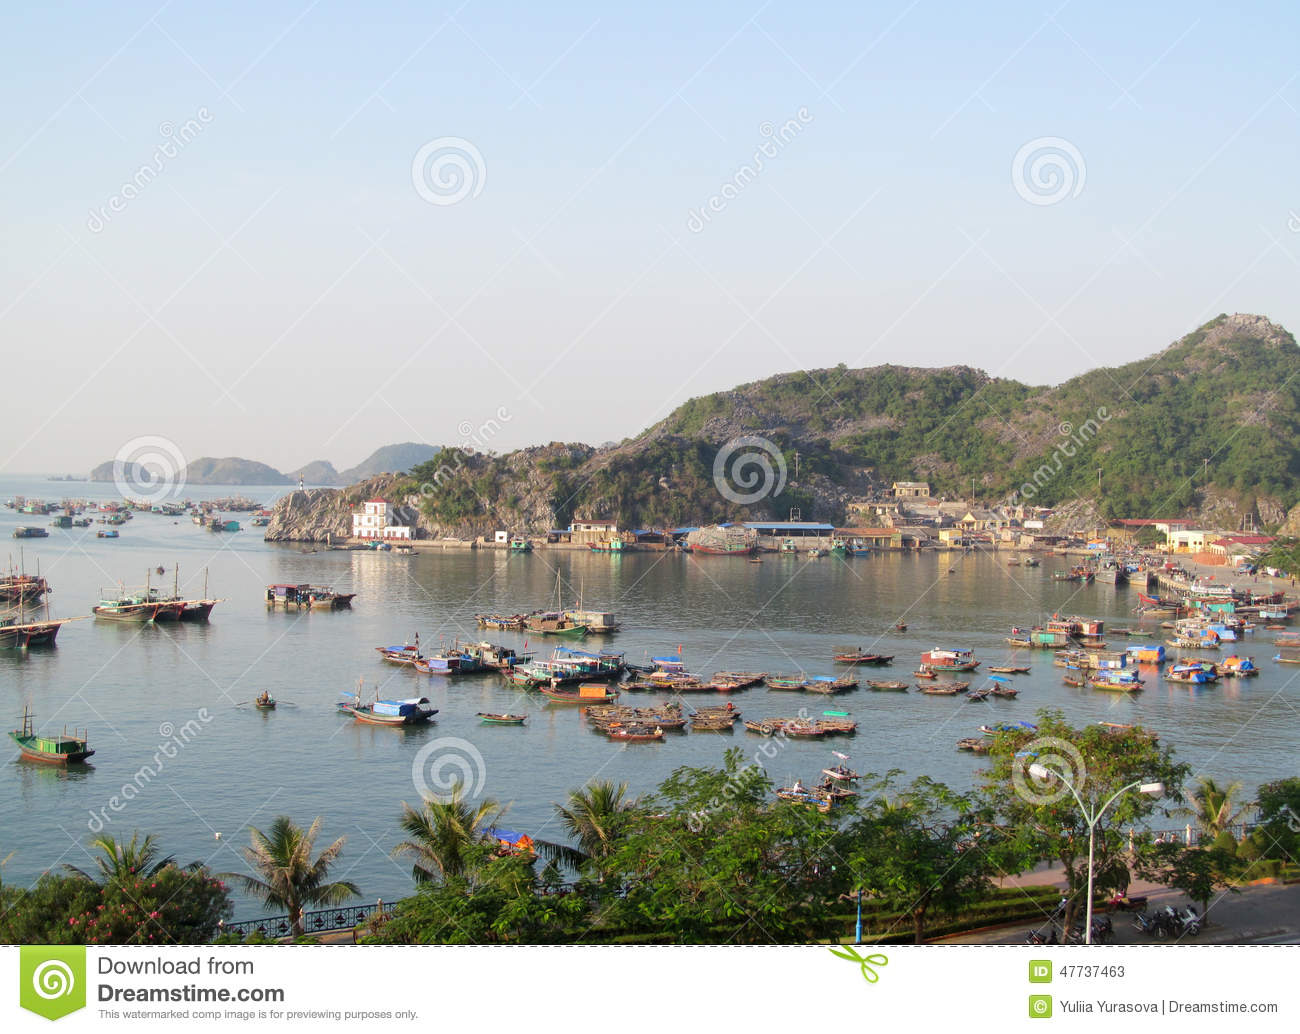 House boats in Ha Long Bay near Cat Ba island, Vietnam